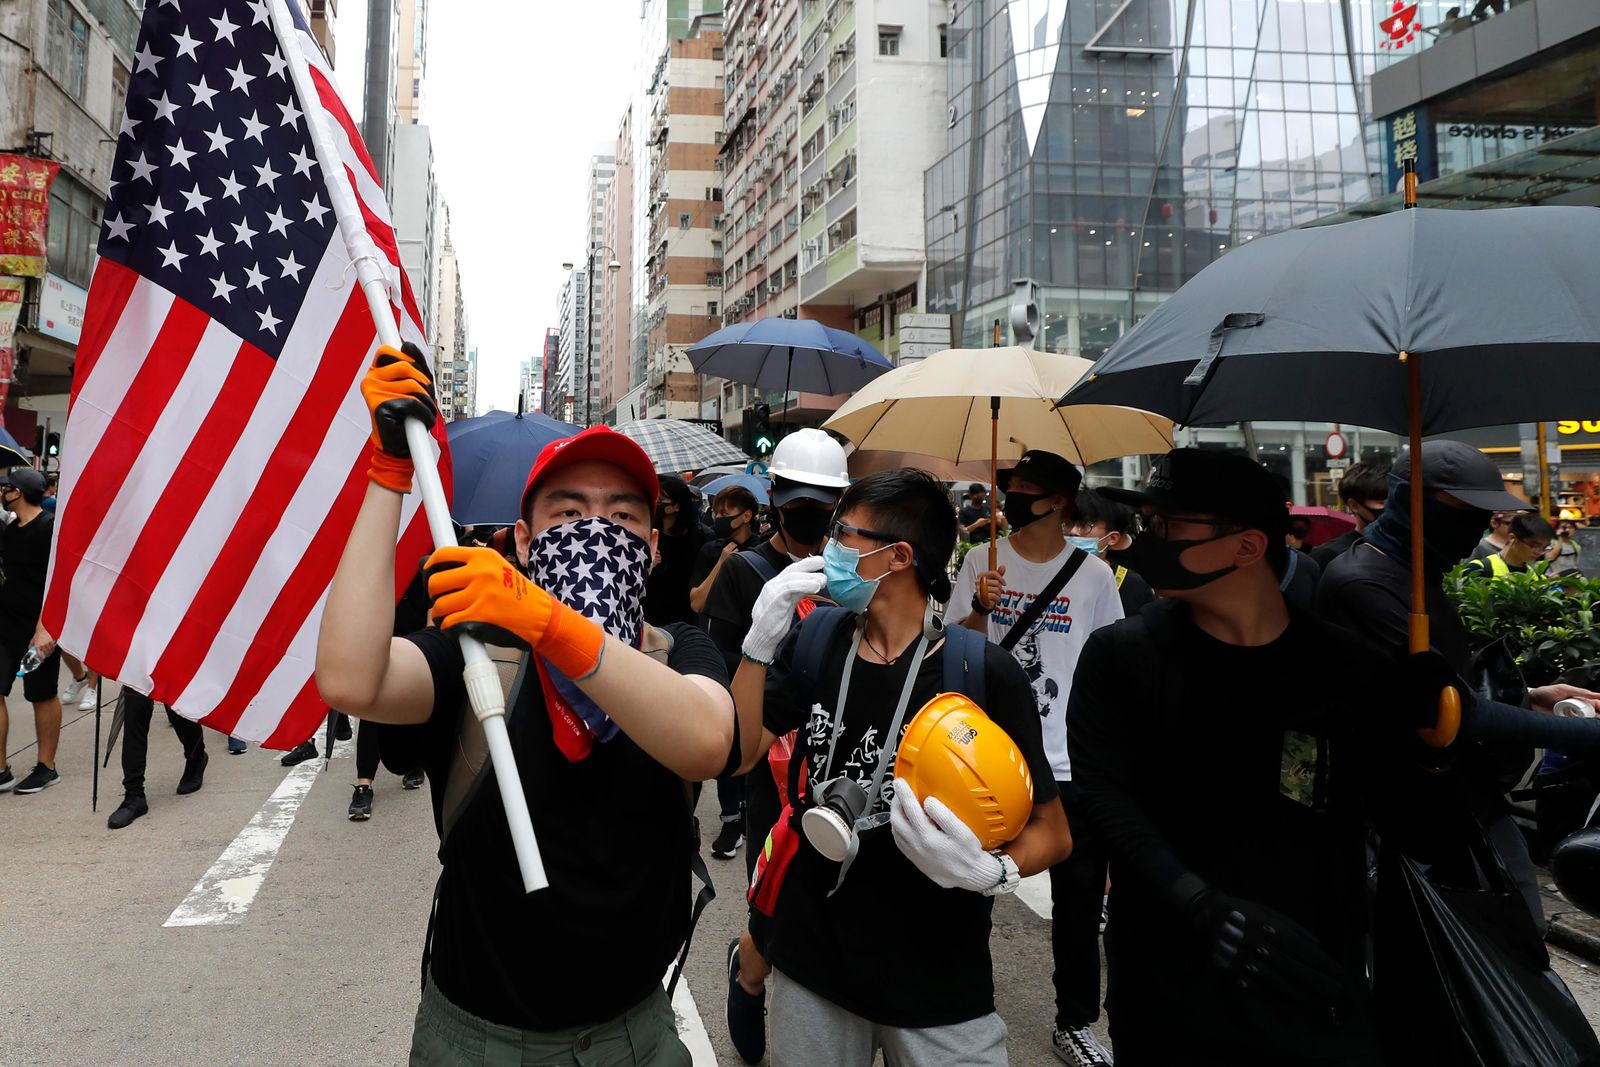 A protester carries a U.S. flag as they march through the Mong Kok neighborhood during a demonstration in Hong Kong, Saturday, Aug. 3, 2019. Hong Kong protesters ignored police warnings and streamed past the designated endpoint for a rally Saturday in the latest of a series of demonstrations targeting the government of the semi-autonomous Chinese territory. (AP Photo/Vincent Thian)